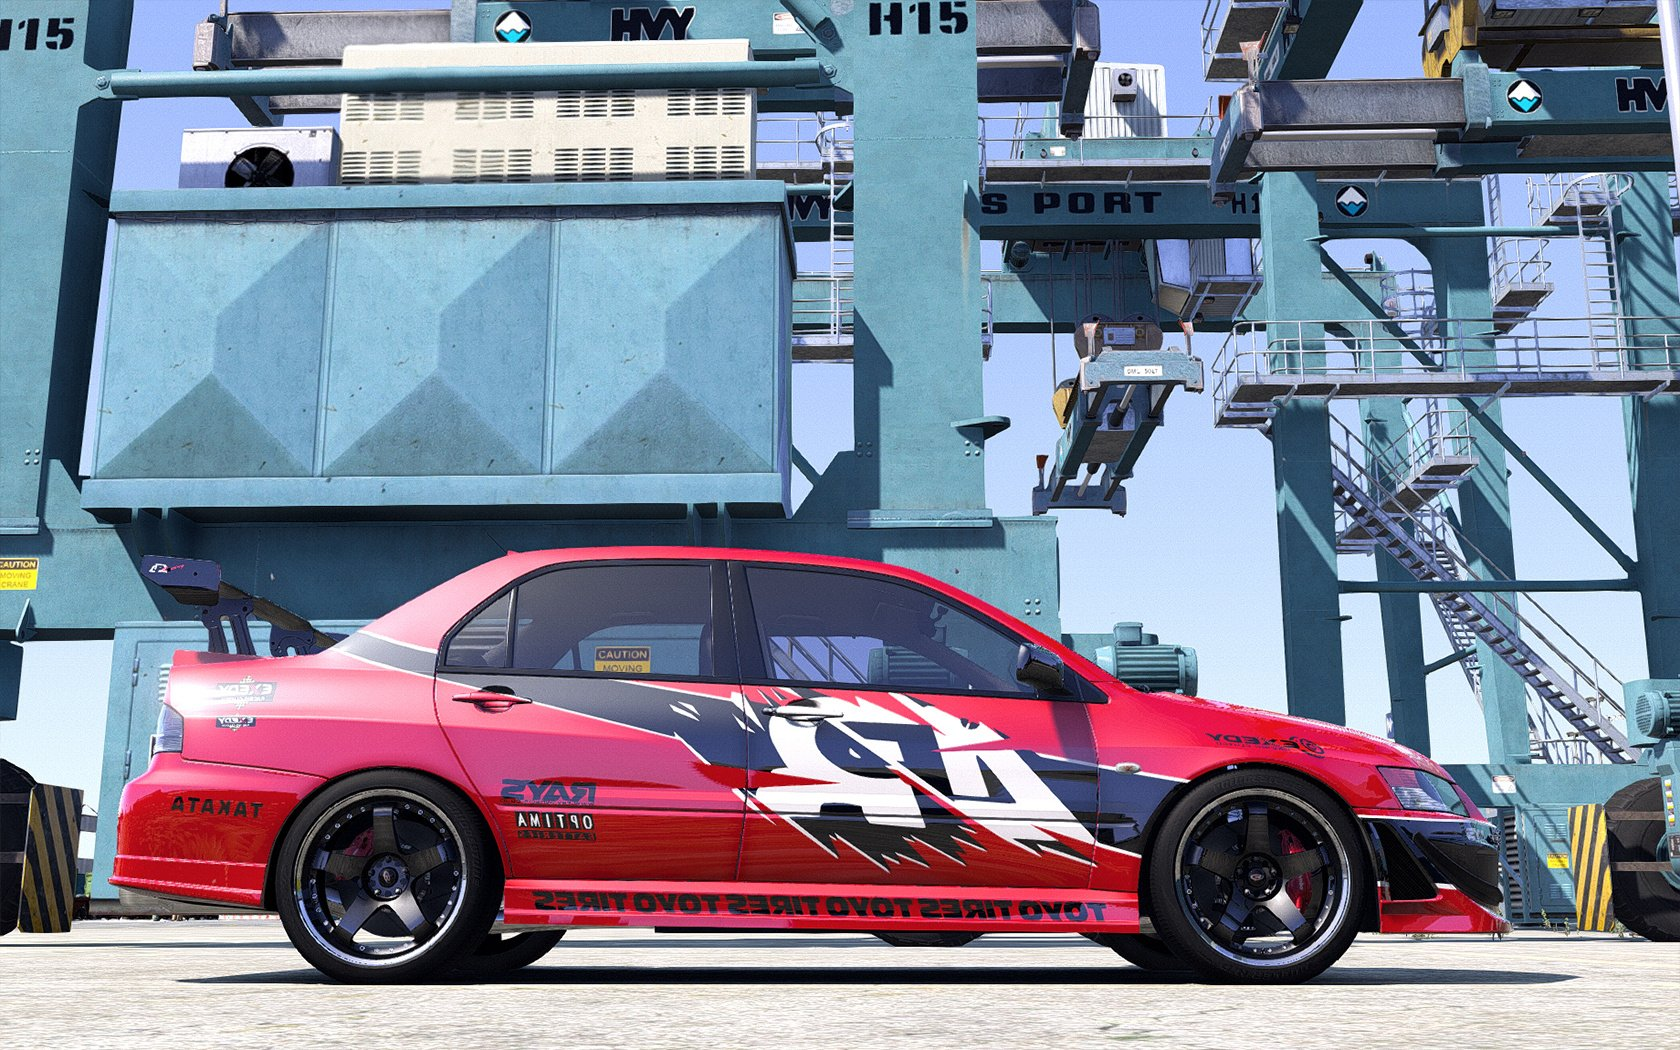 Mitsubishi Lancer Evolution The Fast And The Furious Tokyo Drift